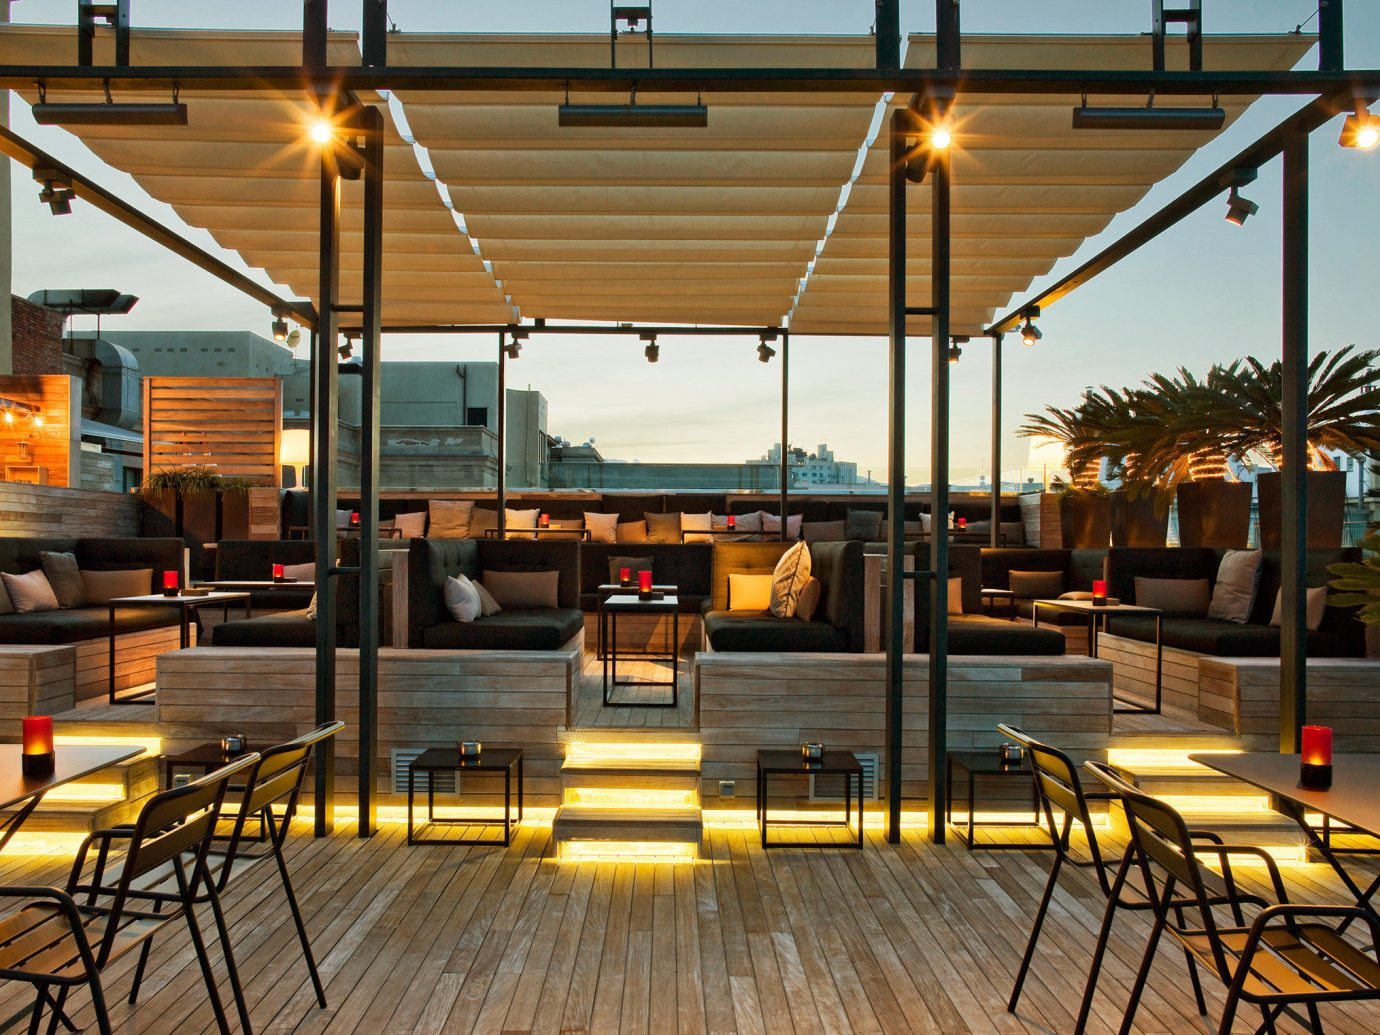 Bar Boutique Hotels Dining Drink Eat Hotels Luxury Nightlife Romantic sky restaurant plaza interior design lighting Design Lobby meal